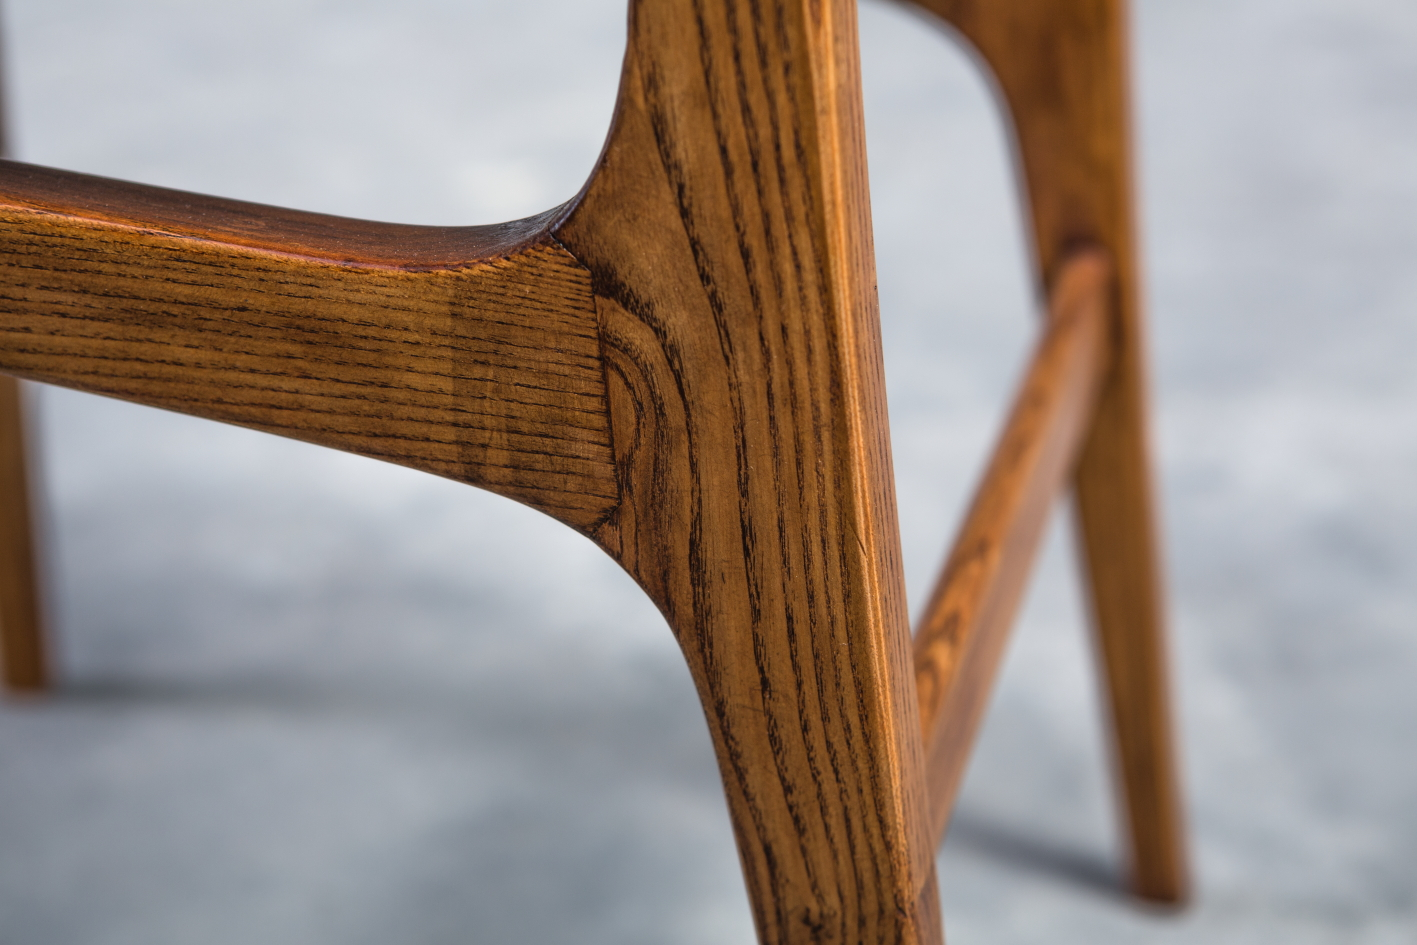 Rare set of 14 chairs for the ''Parco dei Principi'' Hotel - Gio Ponti for Cassina 1965 - Wood frame detail